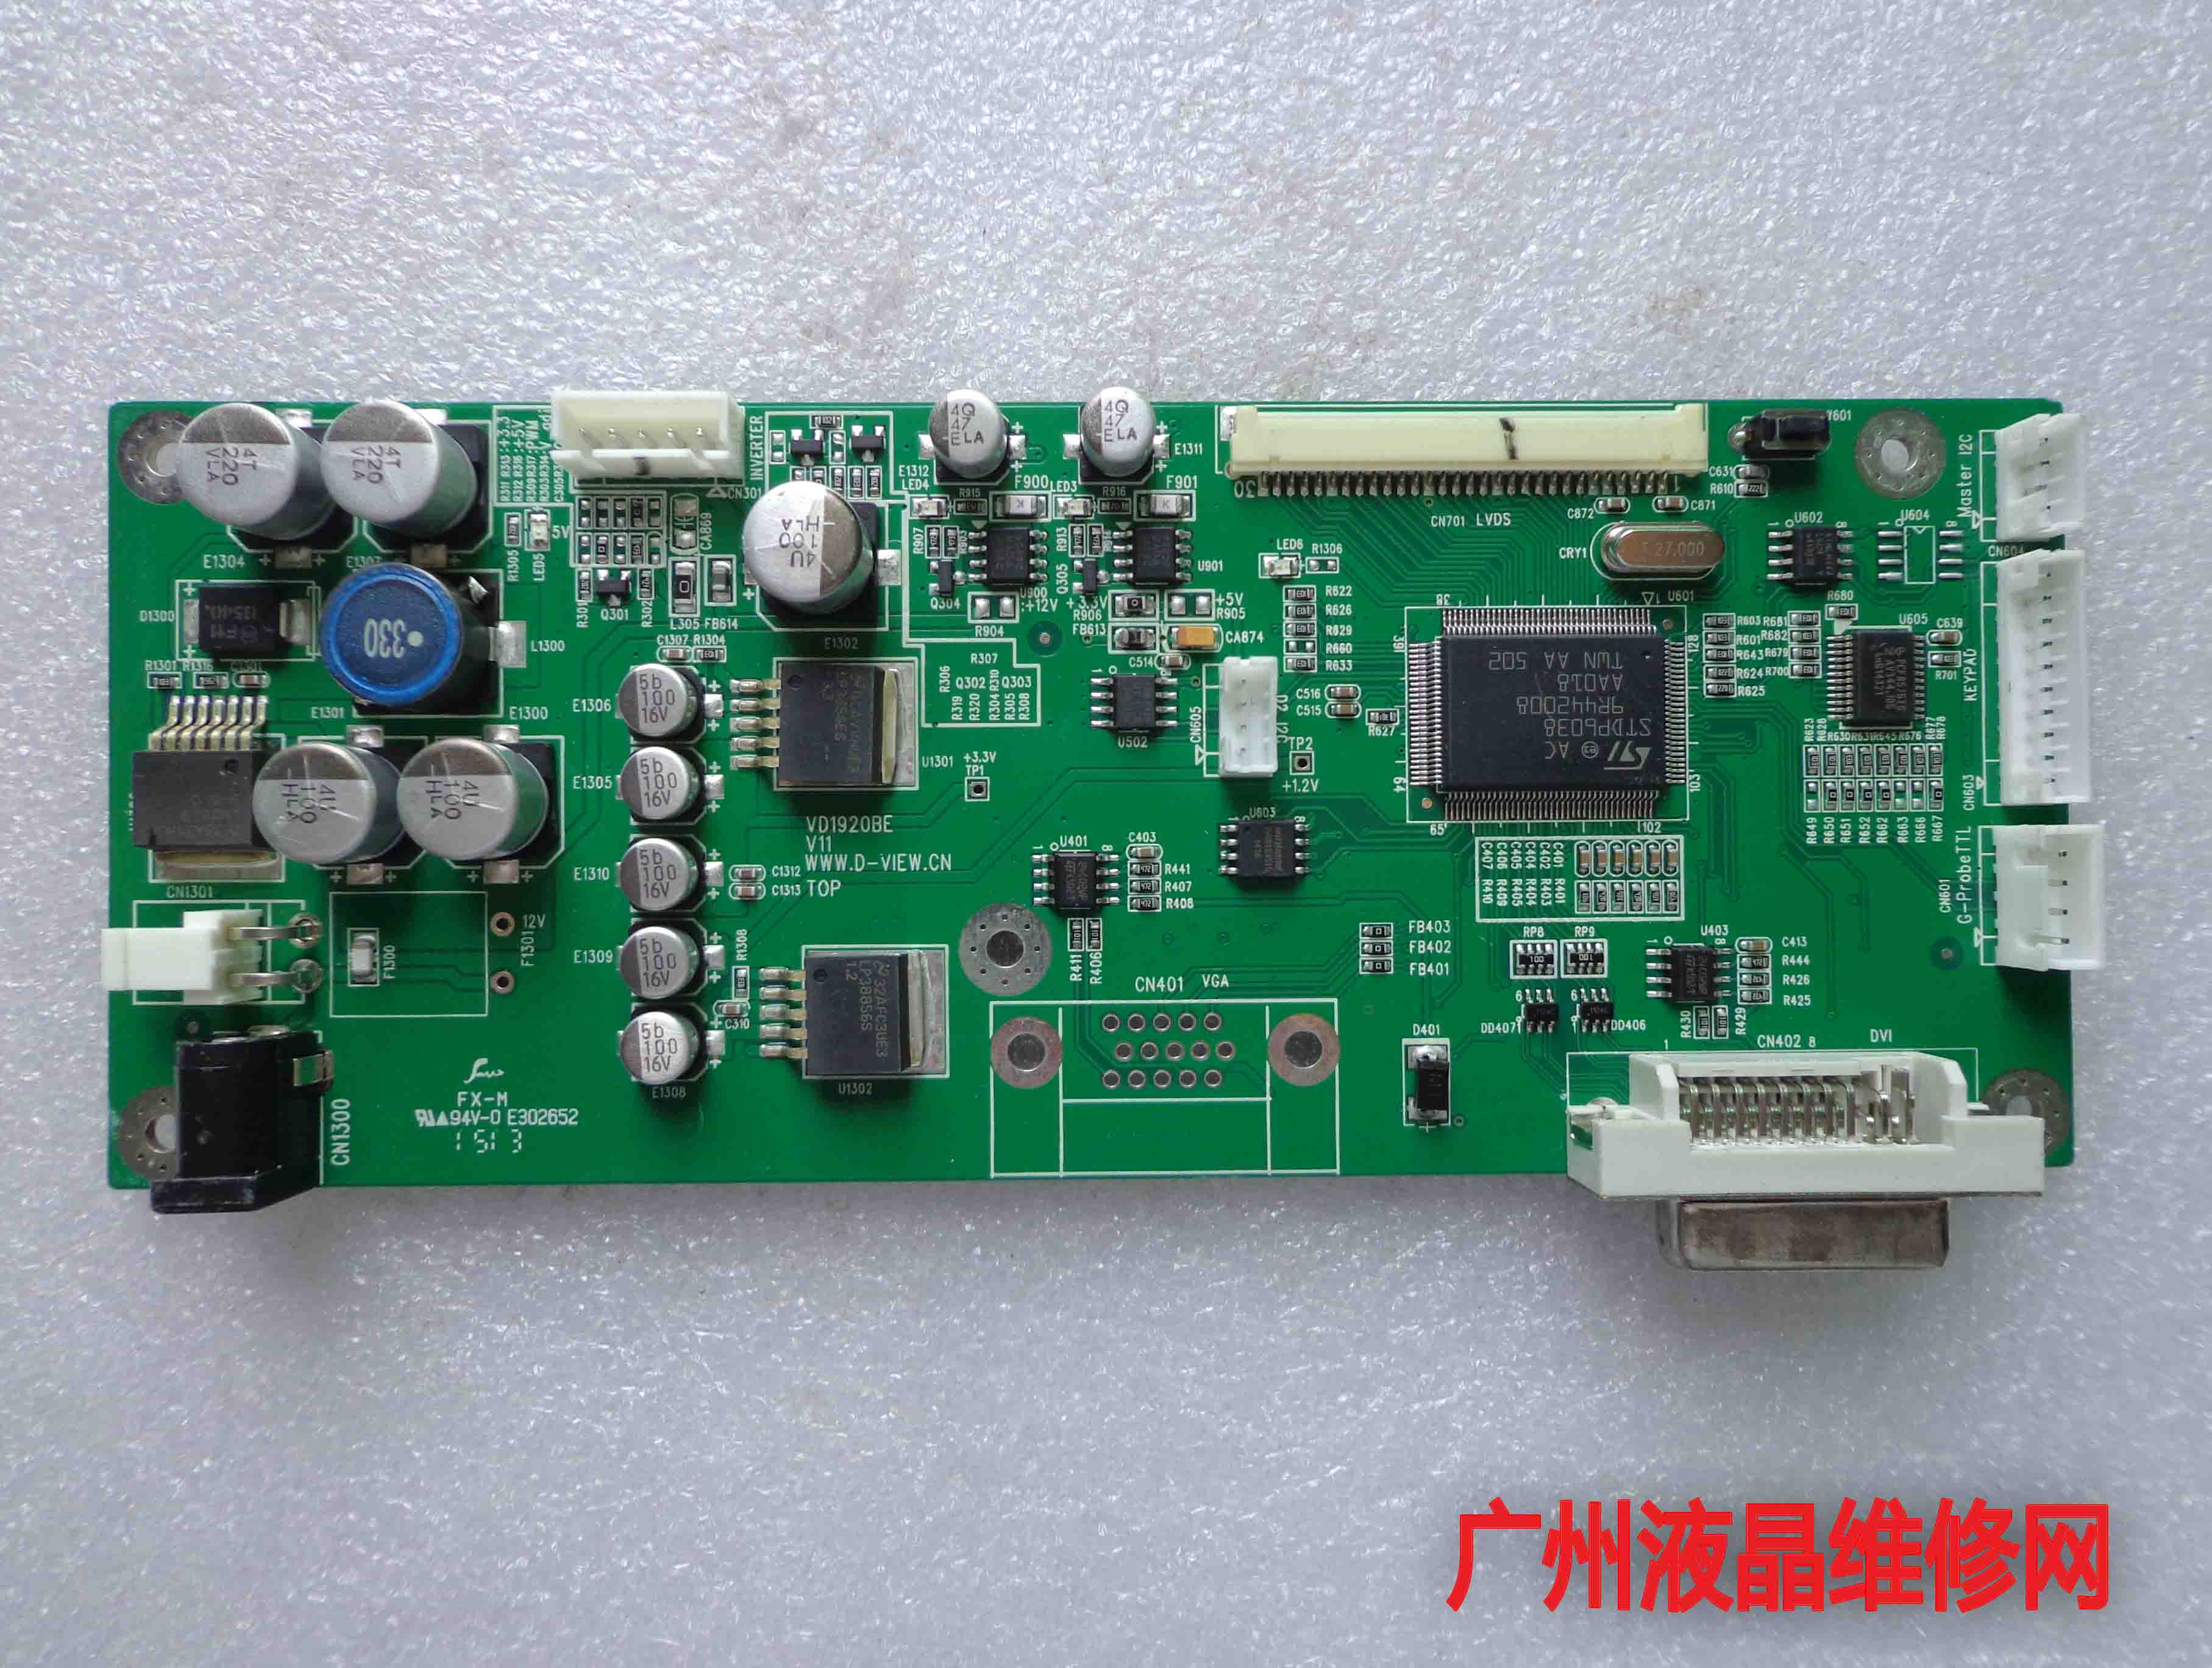 VD1920BE V11 WWW.D-VIEW.CN TOP E302652 Medical Industrial Control Driver Board Motherboard